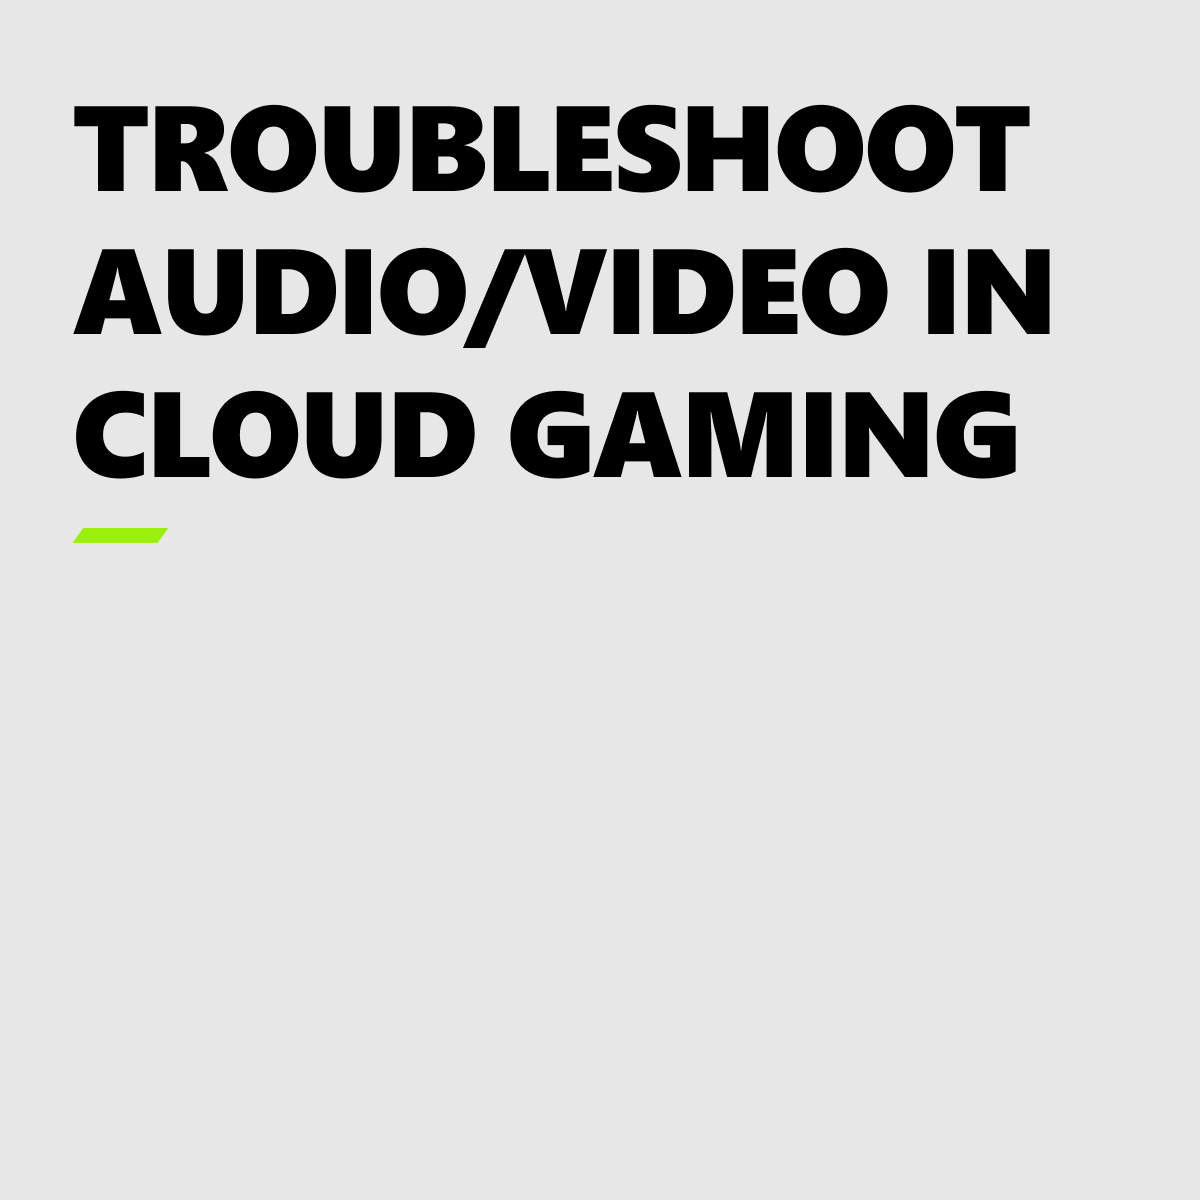 🎶 This speech is my recital, I think it's very vital To rock (a rhyme), that's right (on time) It's Tricky is the title, here we go… 🎶  Don't let Cloud gaming be tricky. Here's how to troubleshoot audio & video issues: